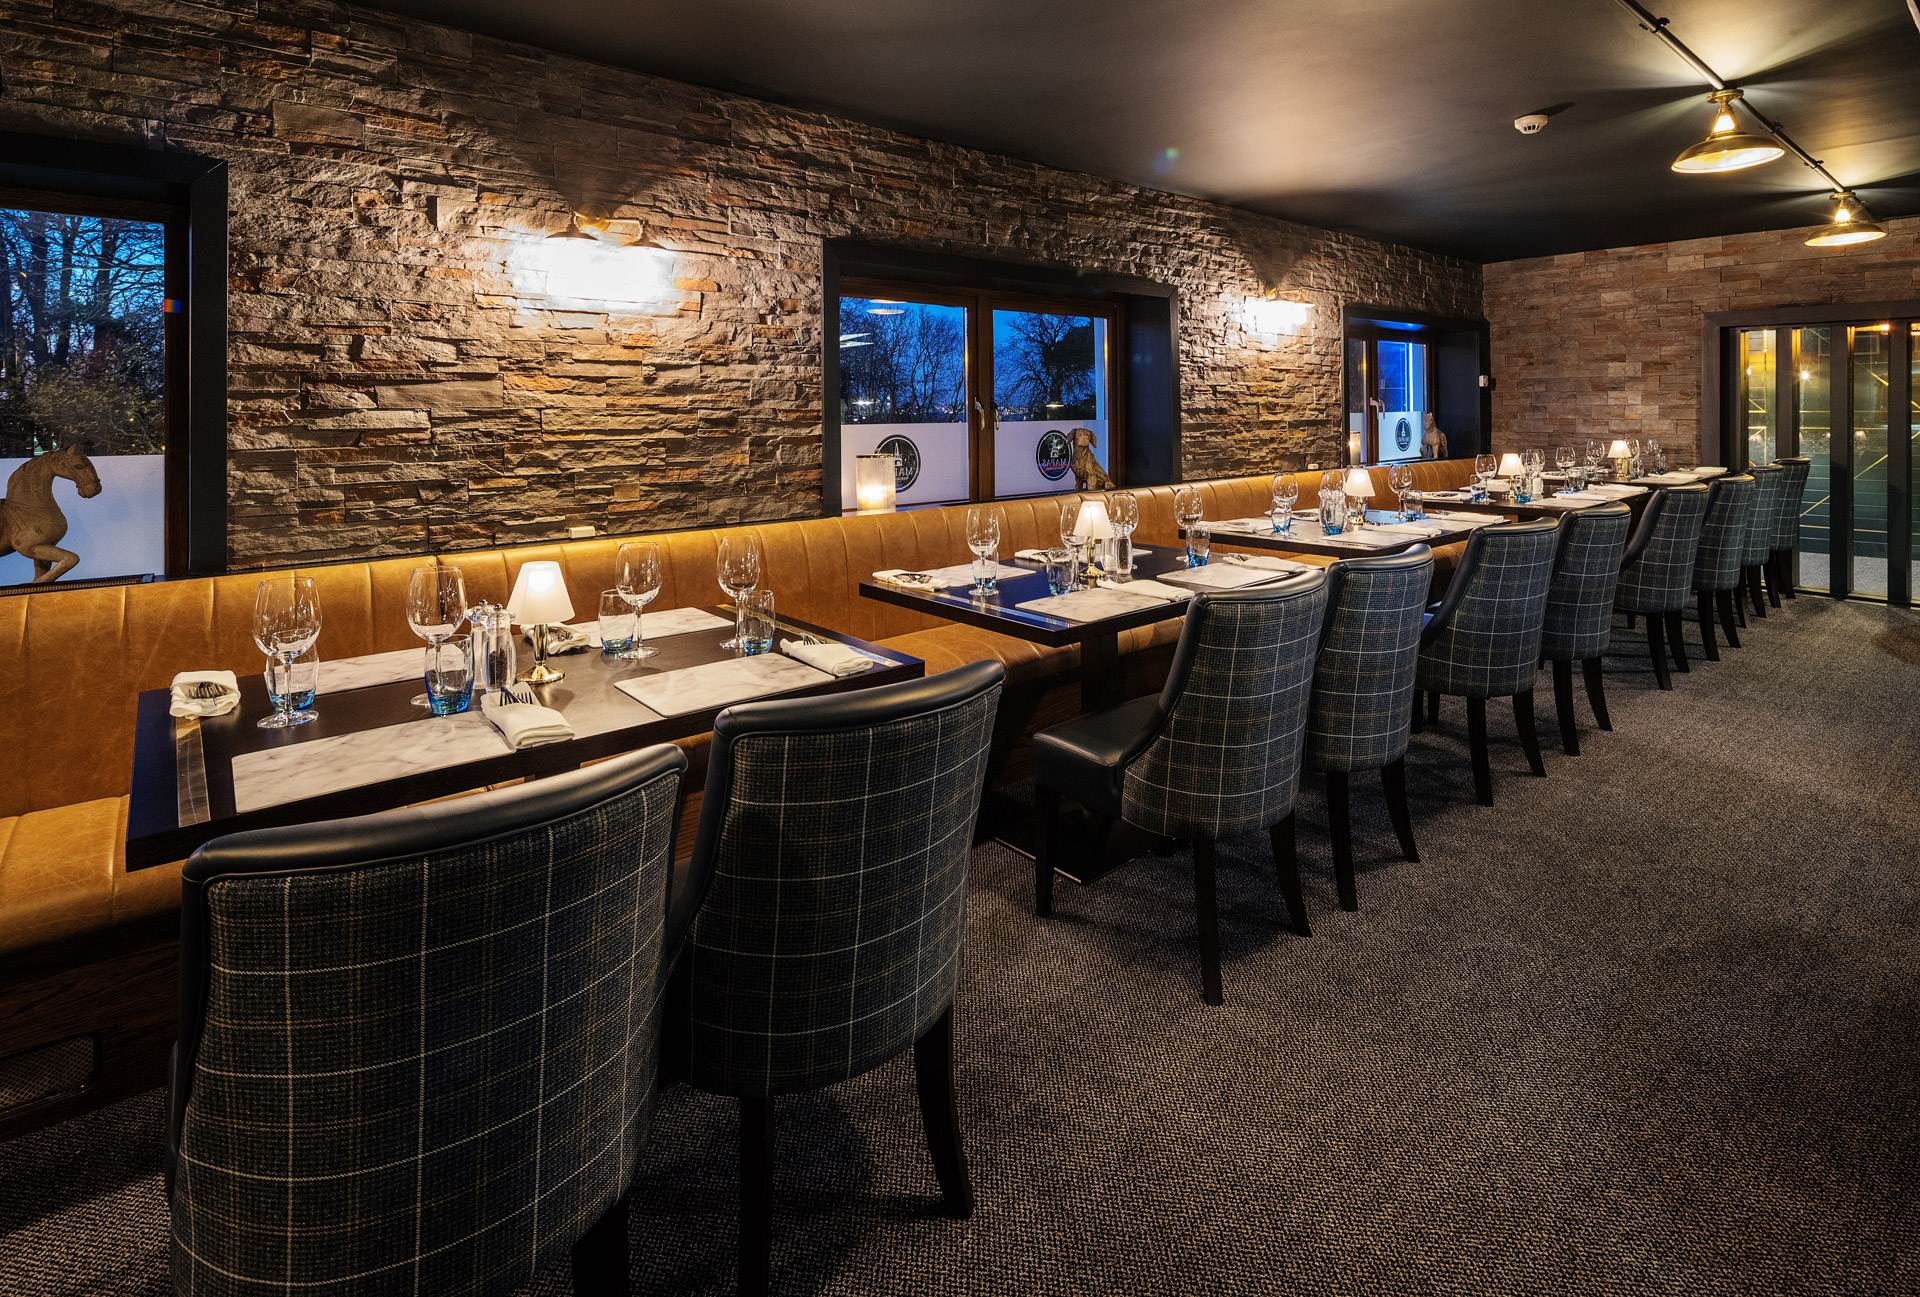 Our Geneva ceiling lights feature in this 18th century castle hotel in Ireland